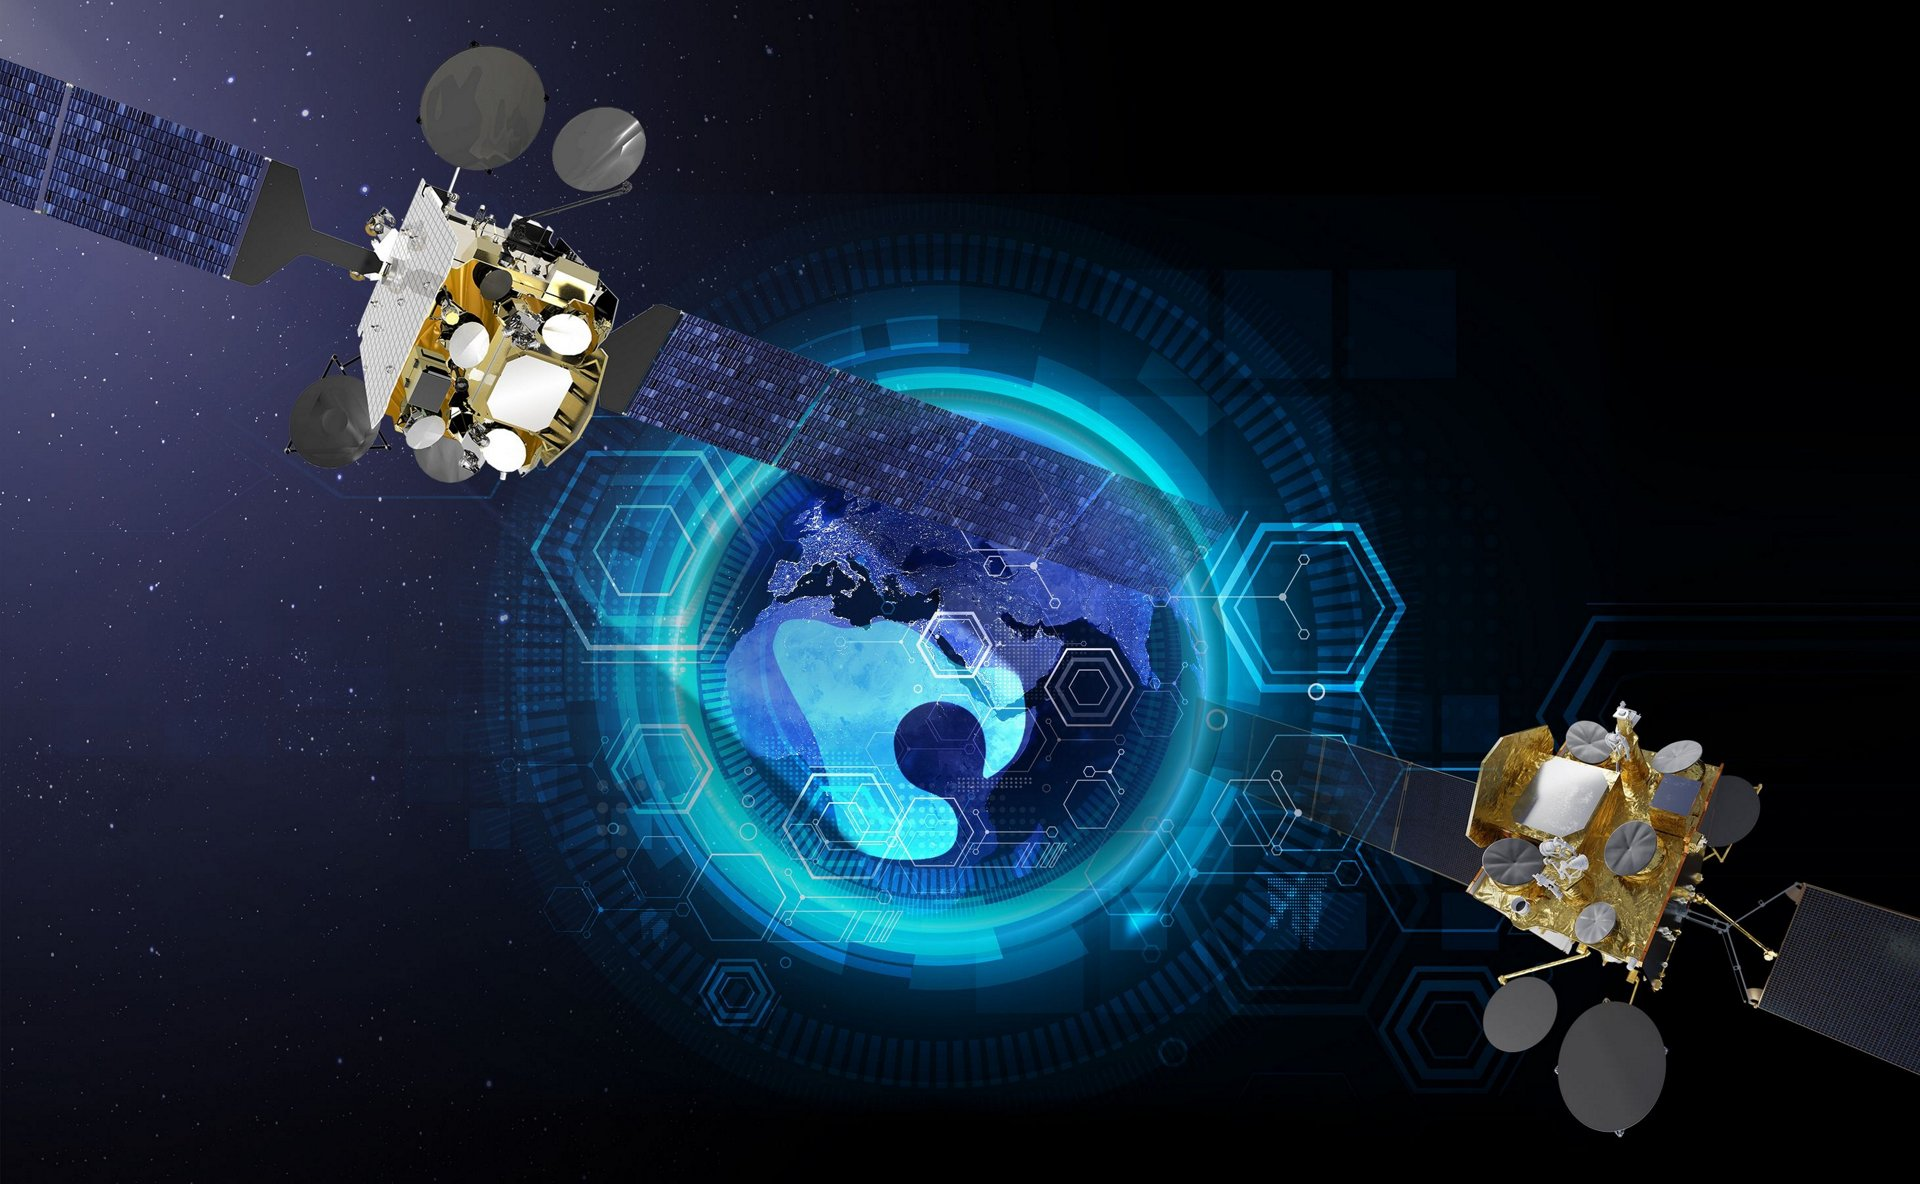 Military telecommunications services on Syracuse IV satellites